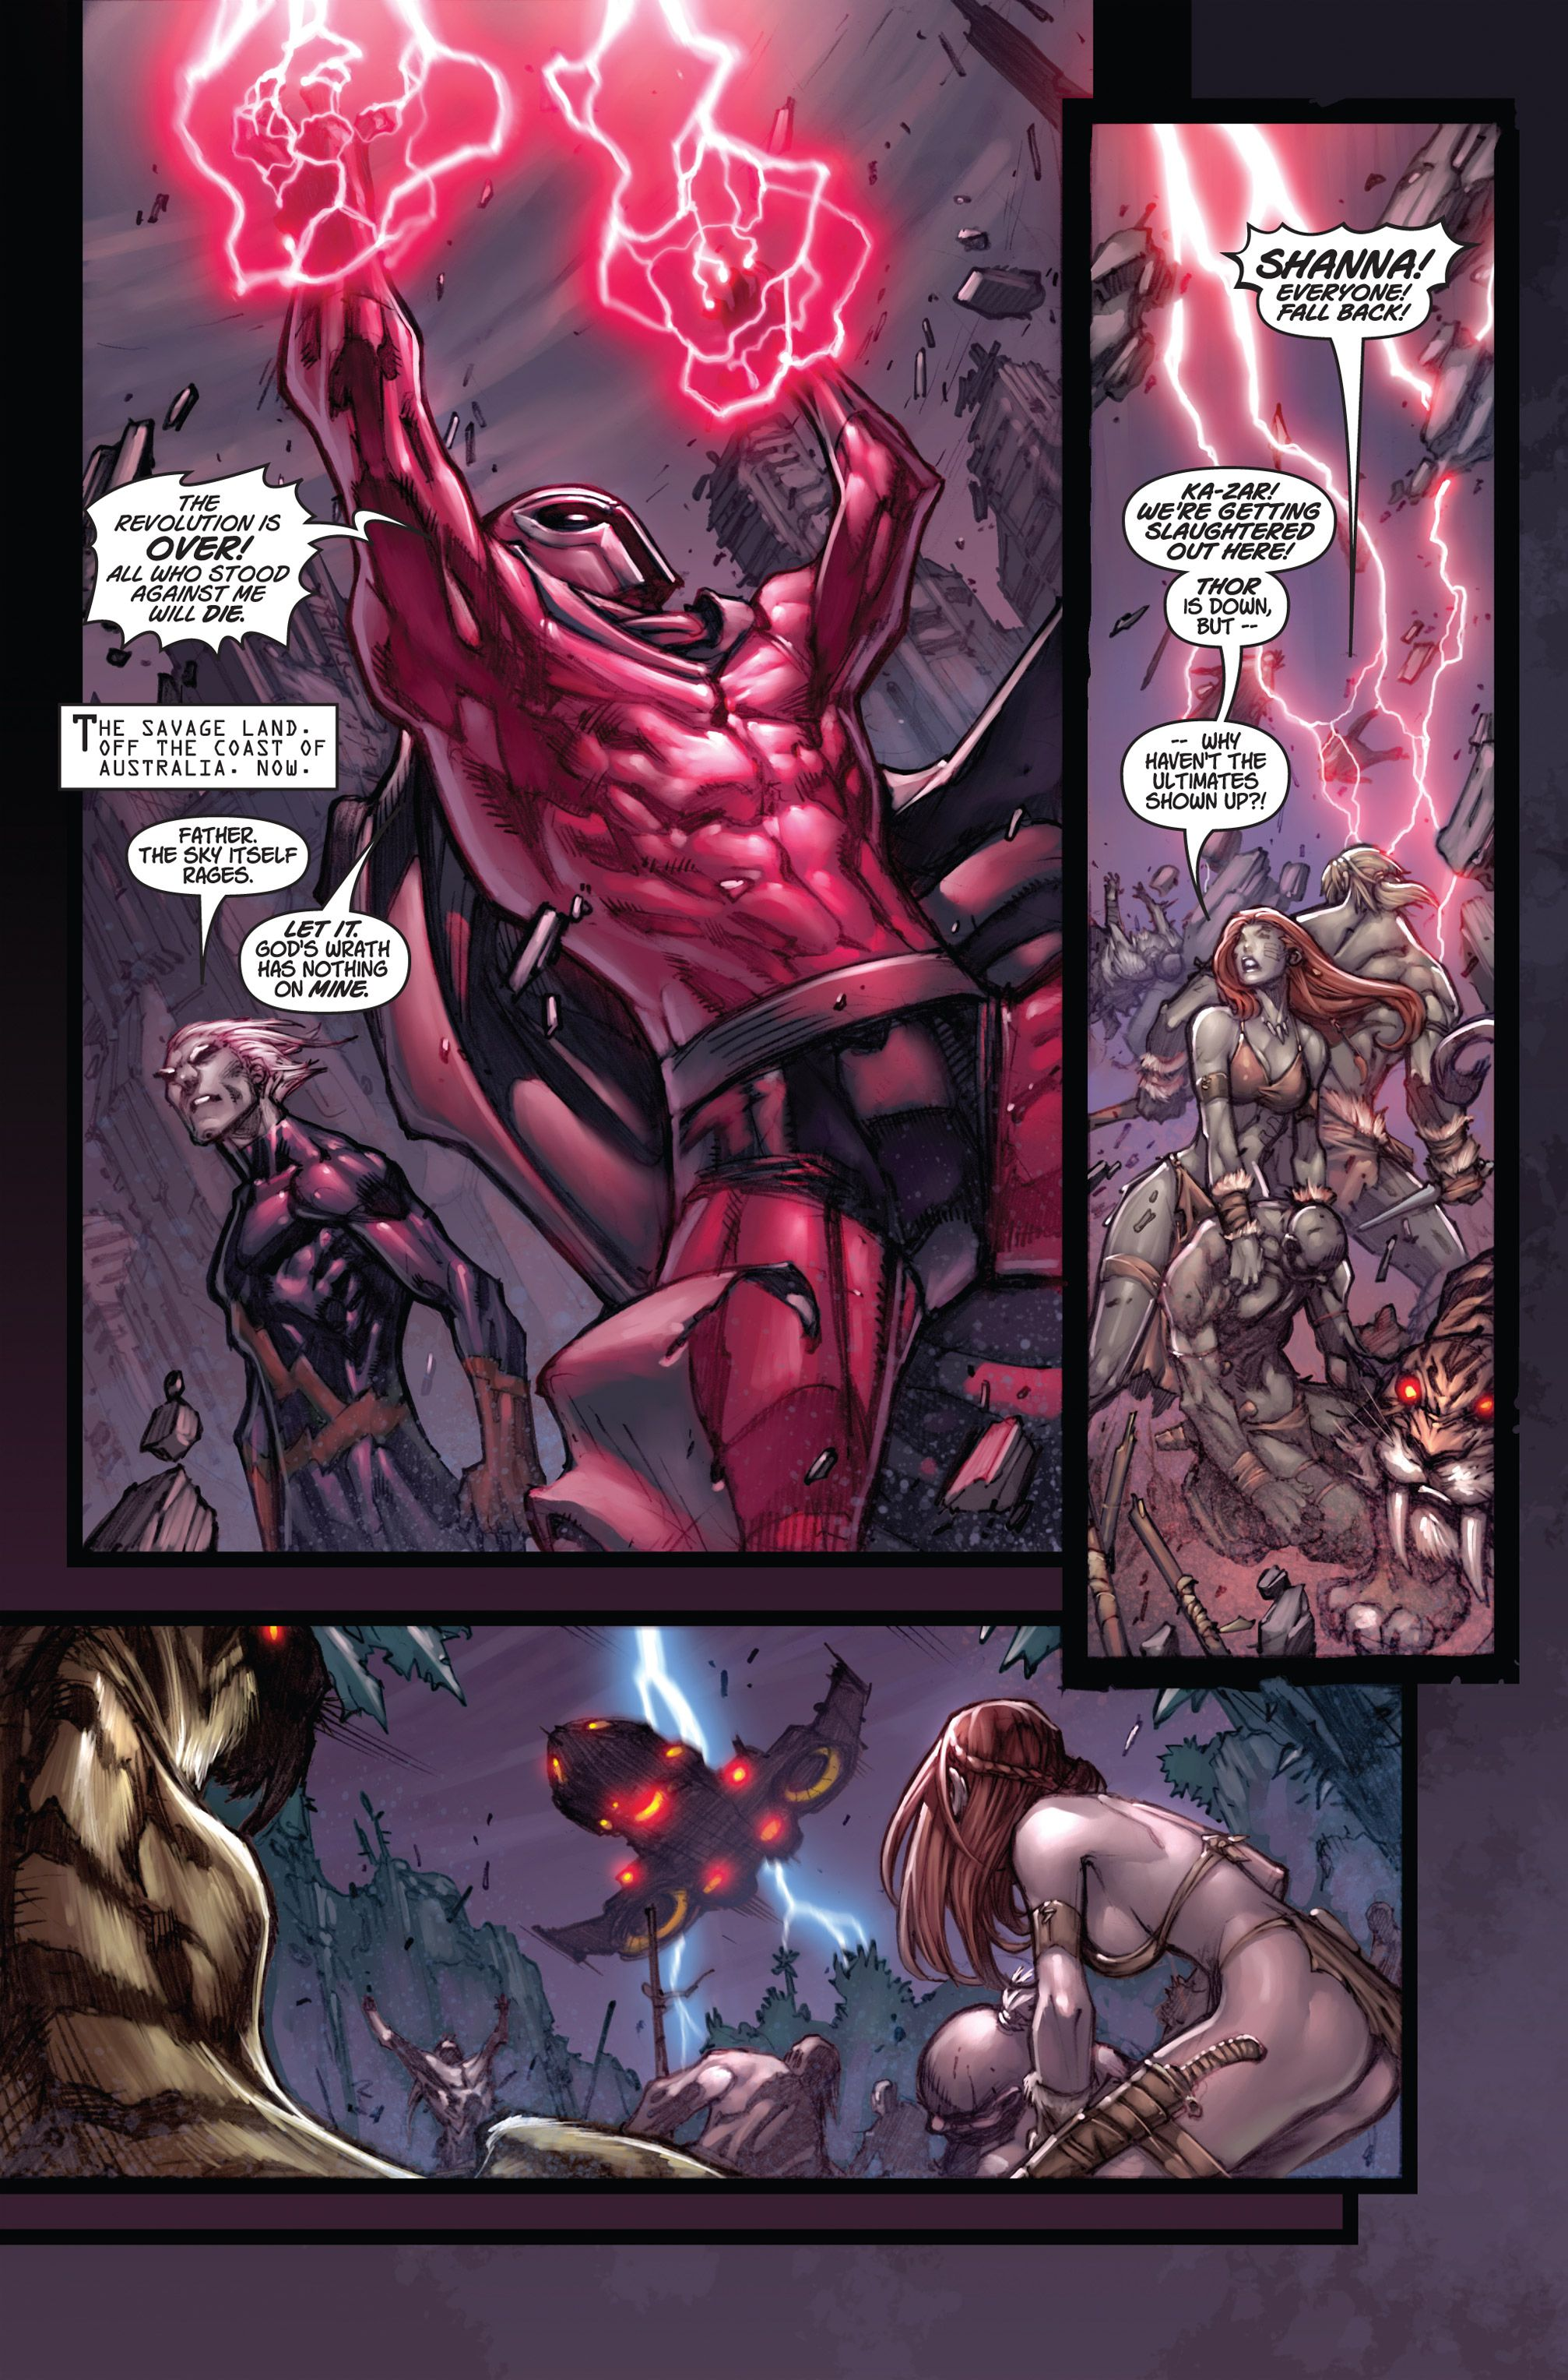 Ultimates 3 Issue #5 - Read Ultimates 3 Issue #5 comic online in high quality